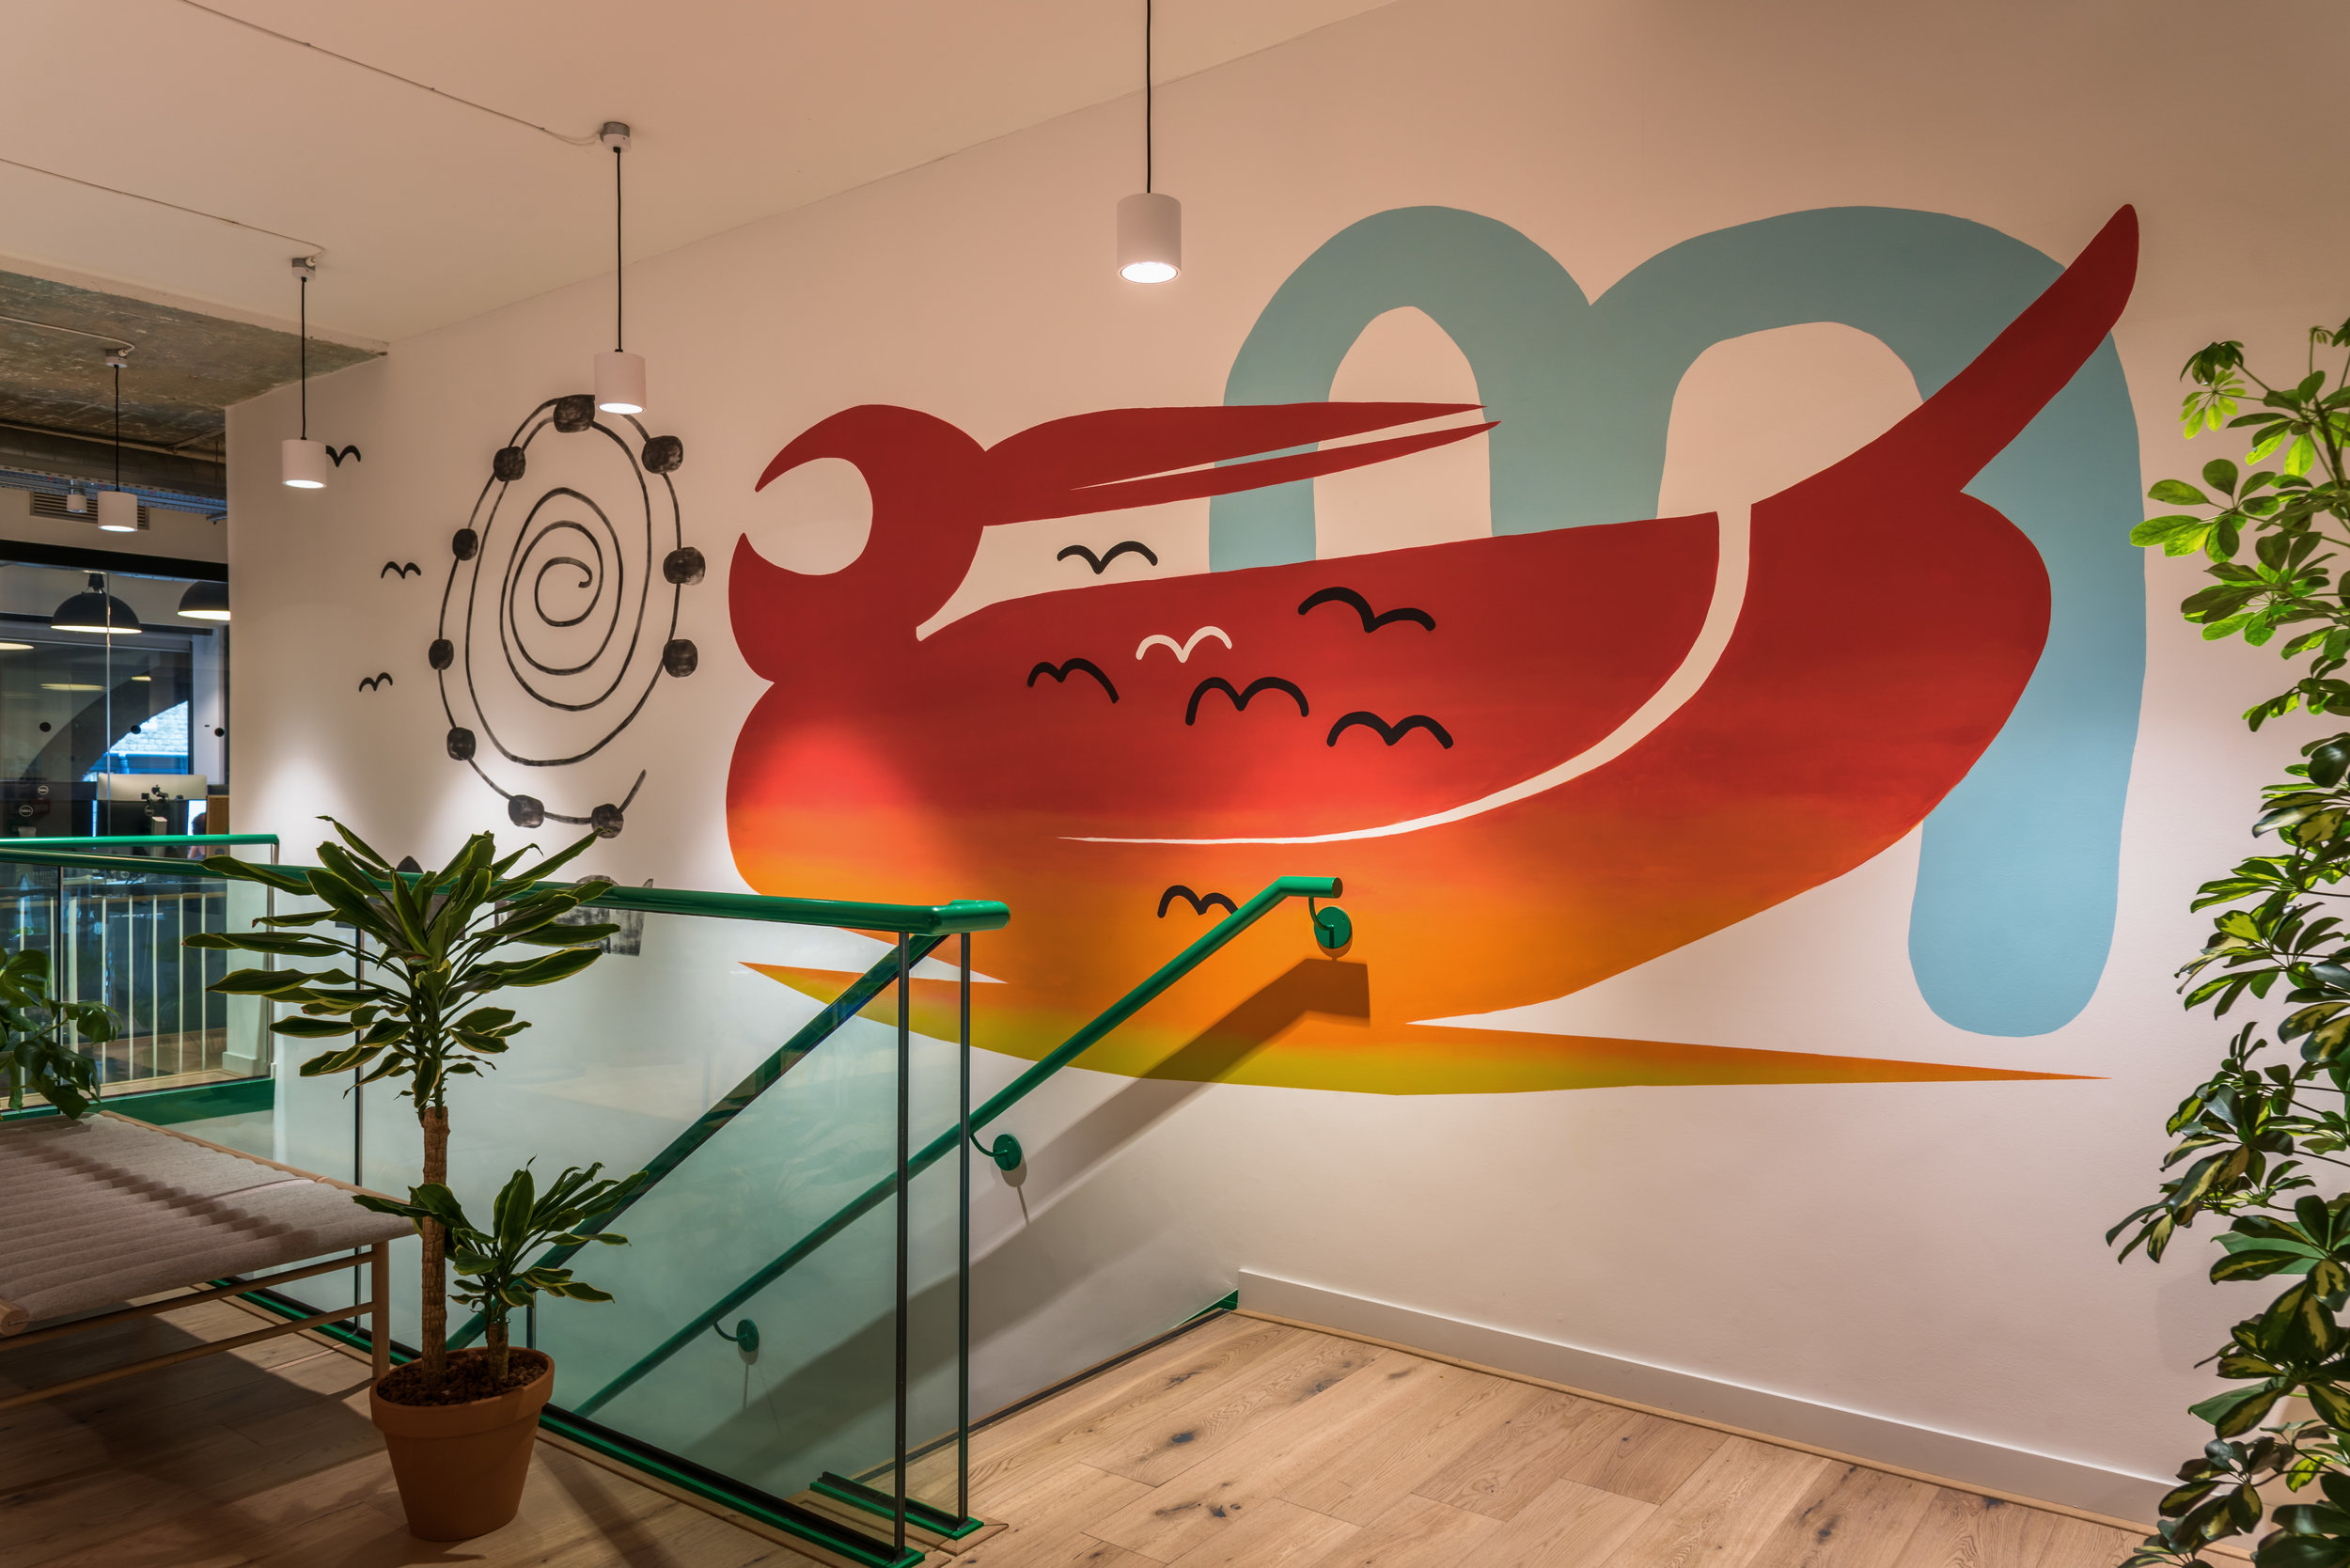 International House WeWork mural x Accent London